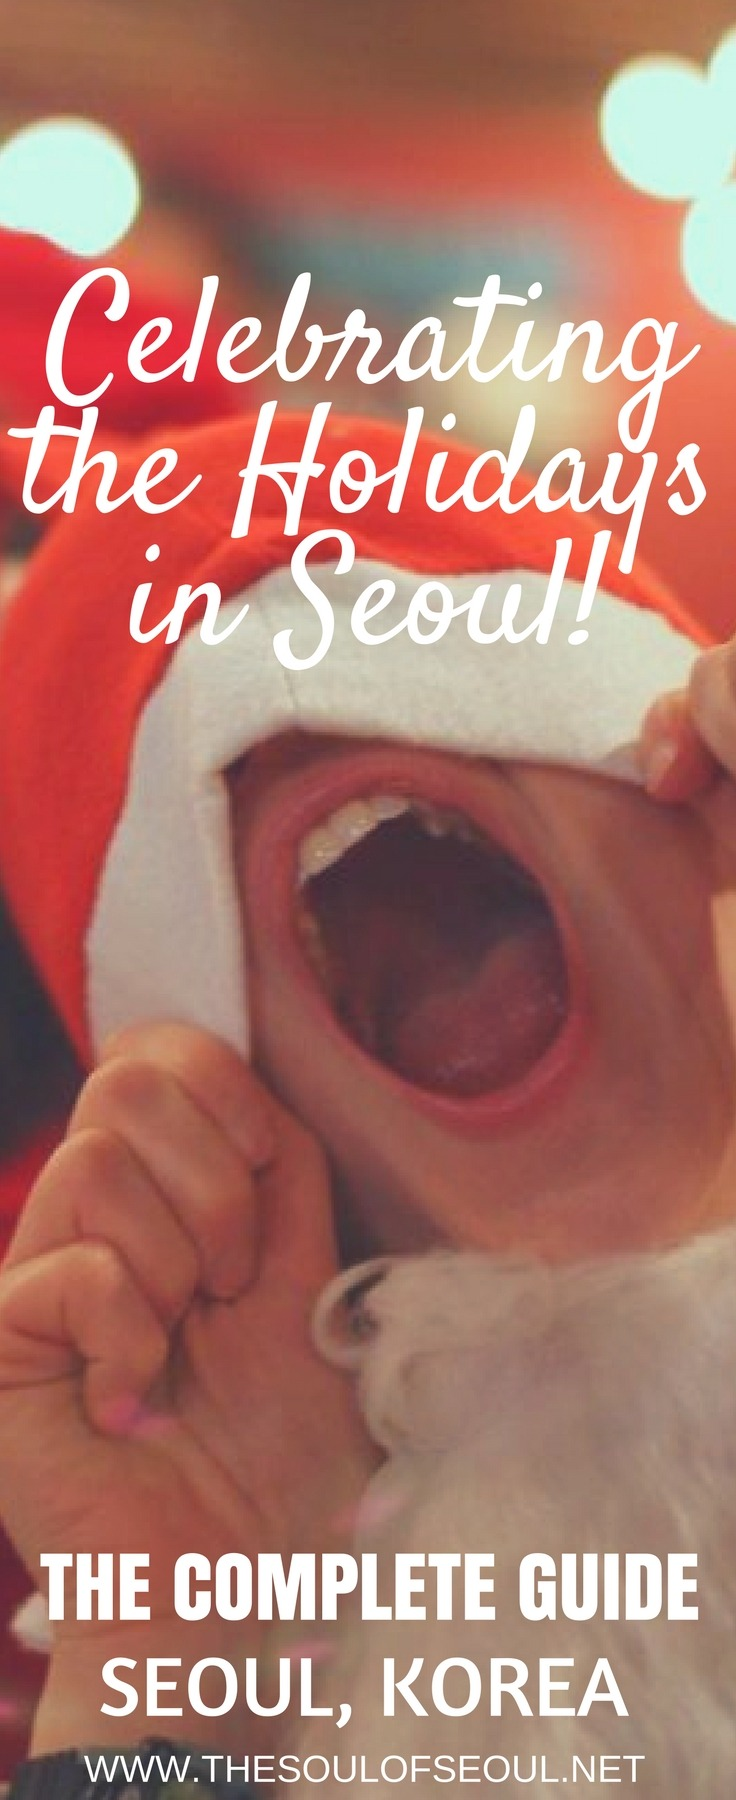 Celebrating the Holidays in Seoul, Korea: The complete guide to performances, Christmas markets, twinkling lights and ice skating rinks in Seoul, Korea.